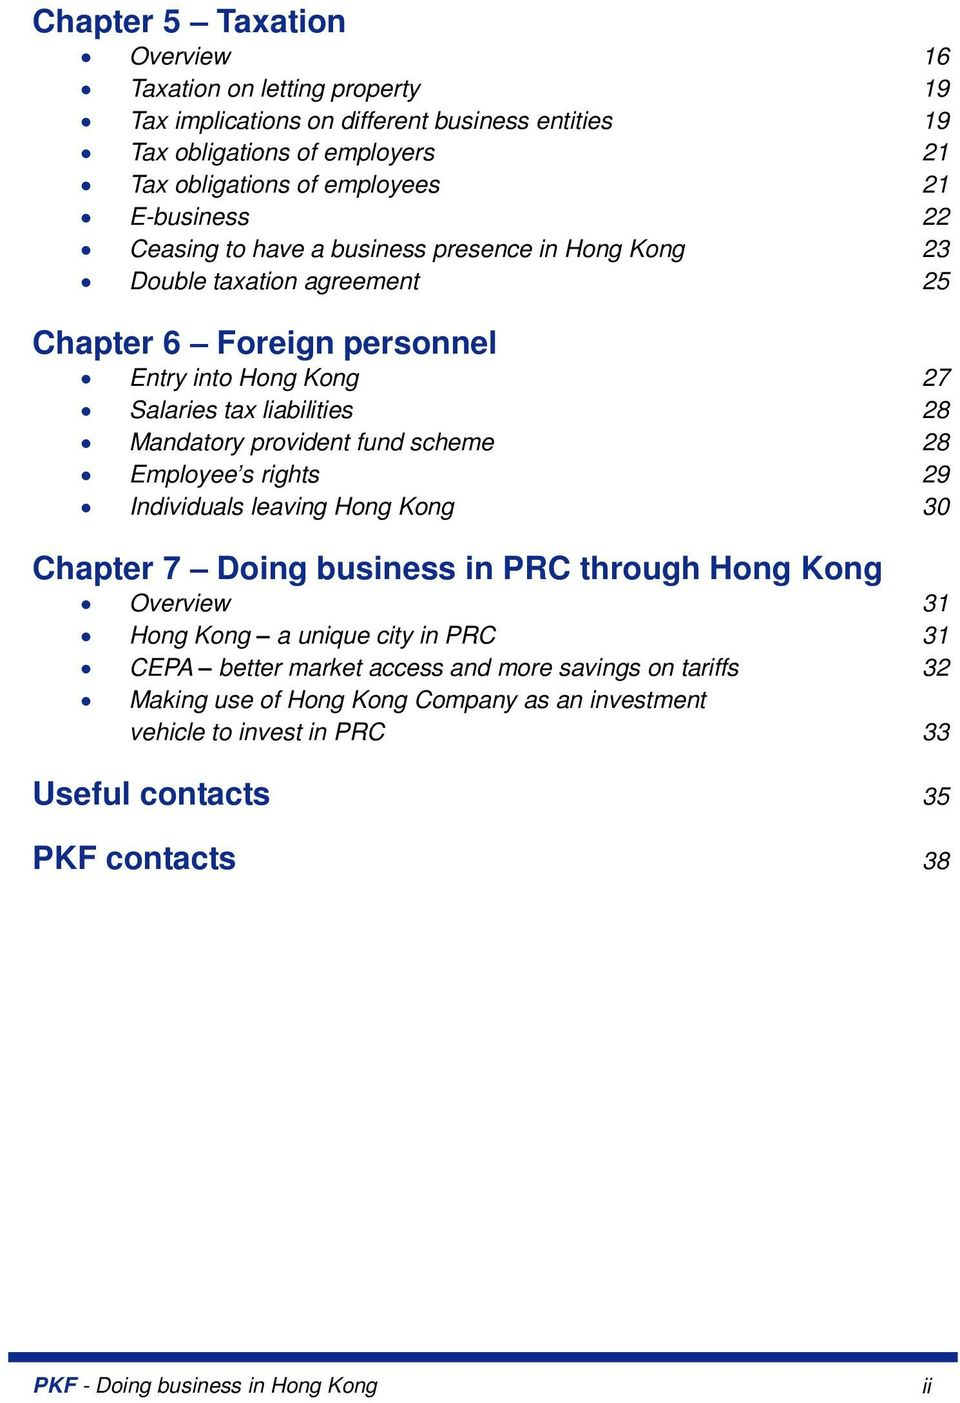 provident fund scheme 28 Employee s rights 29 Individuals leaving Hong Kong 30 Chapter 7 Doing business in PRC through Hong Kong Overview 31 Hong Kong a unique city in PRC 31 CEPA